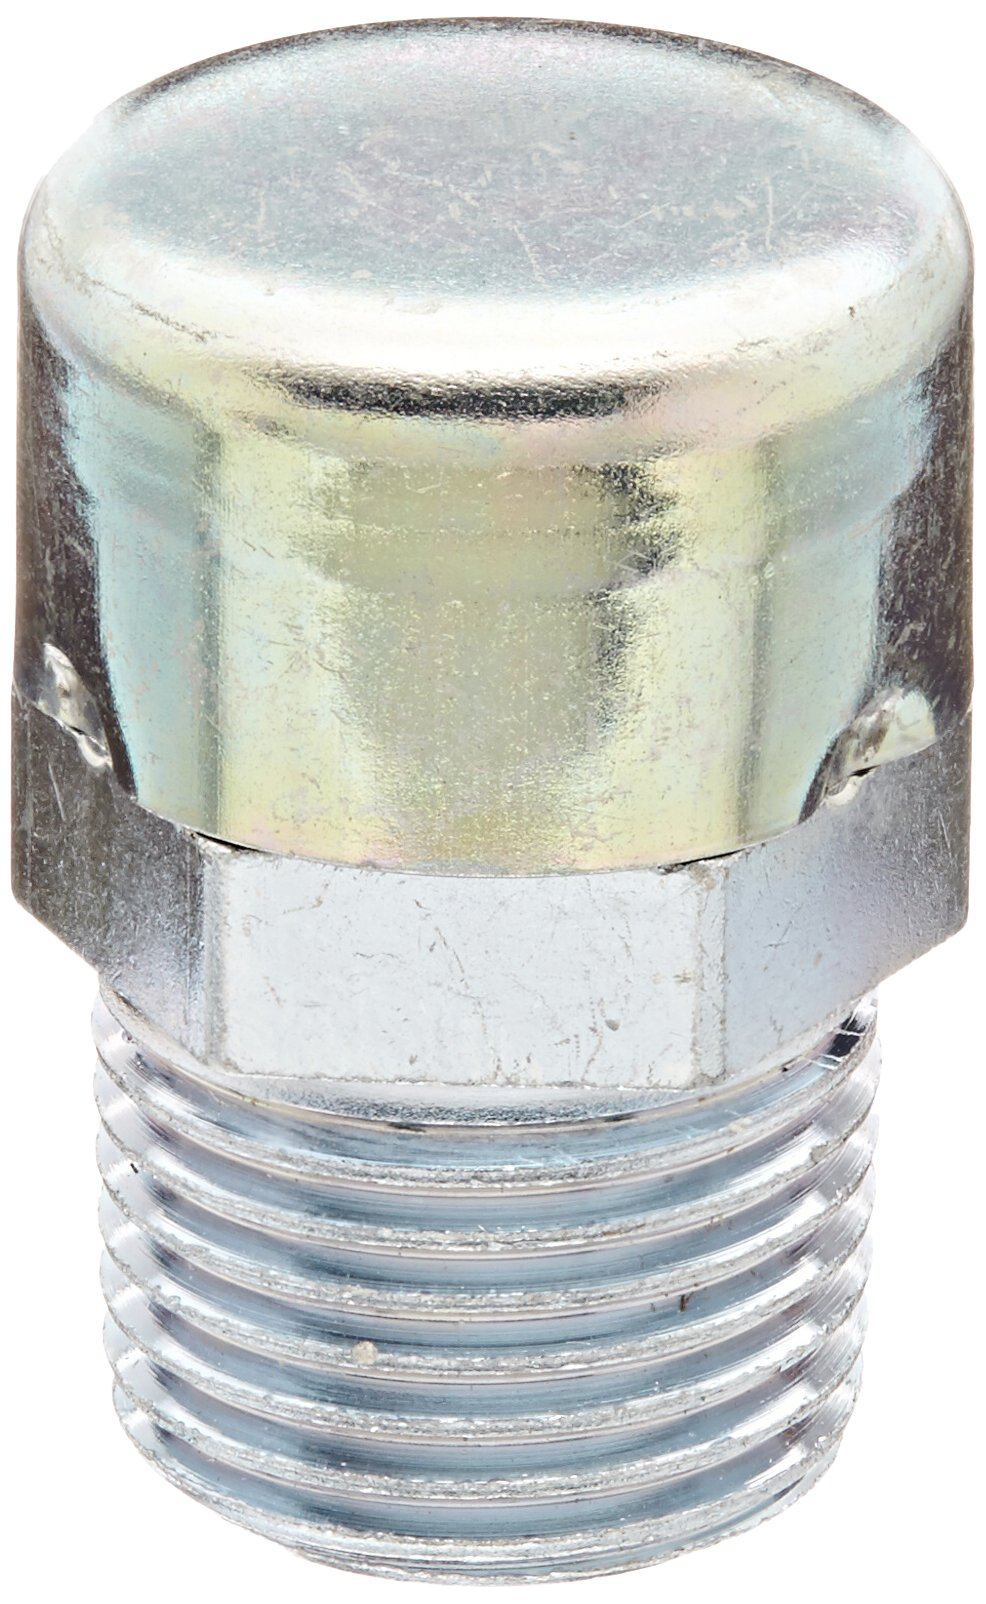 Gits 1633-050801 Style 1633 Breather Vent, 1/2-14 NPT Breather with Screen and Nylon Filter